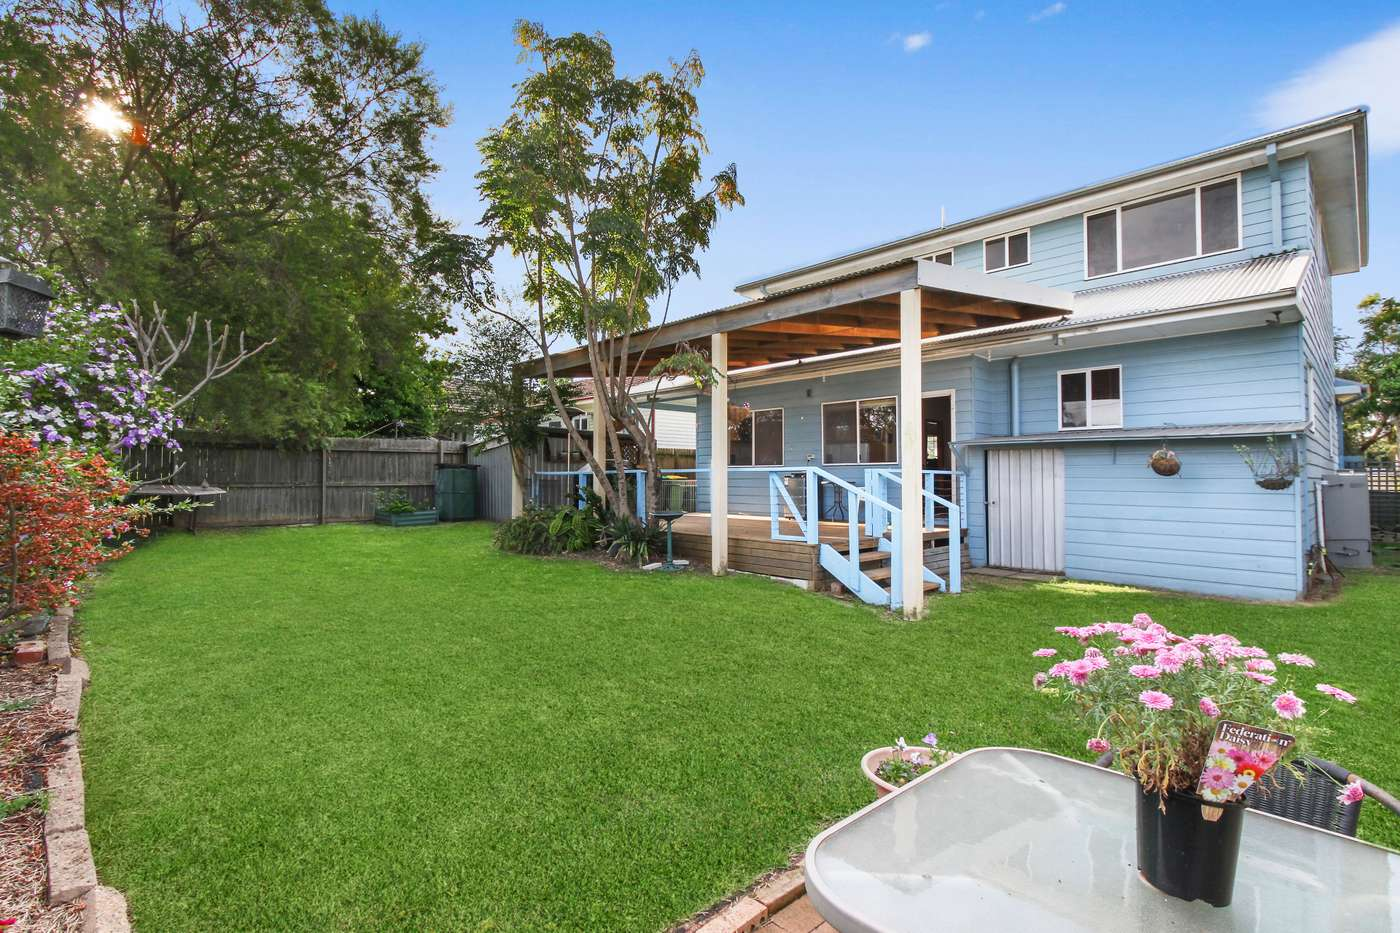 Main view of Homely house listing, 60 Bertha Street, Merrylands, NSW 2160